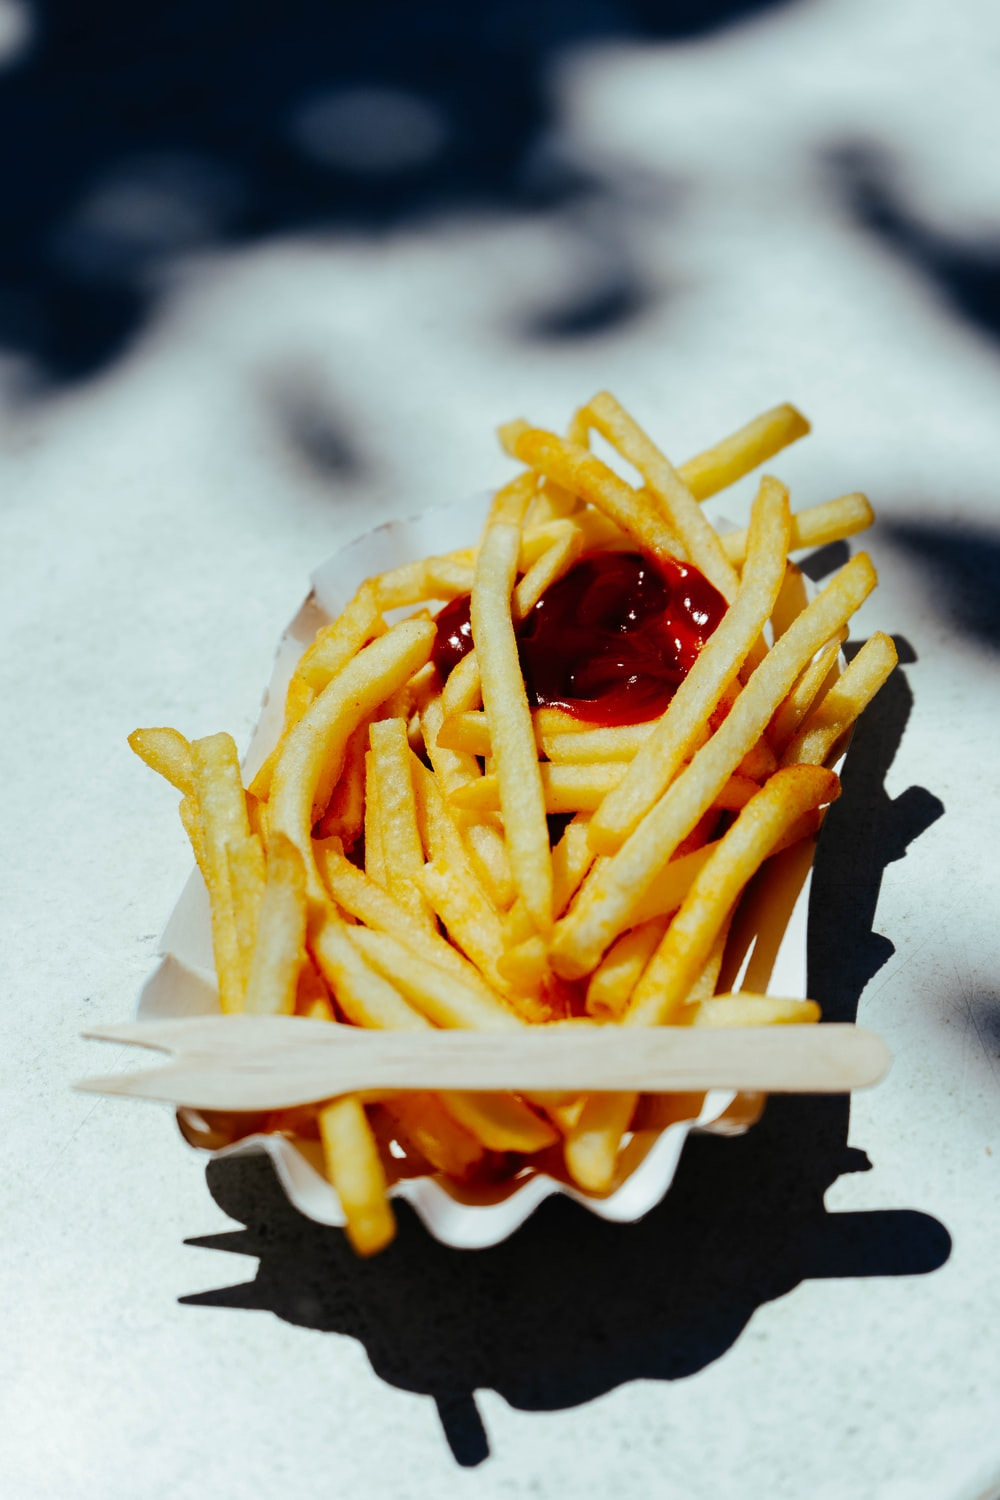 french fries with ketchup on white paper